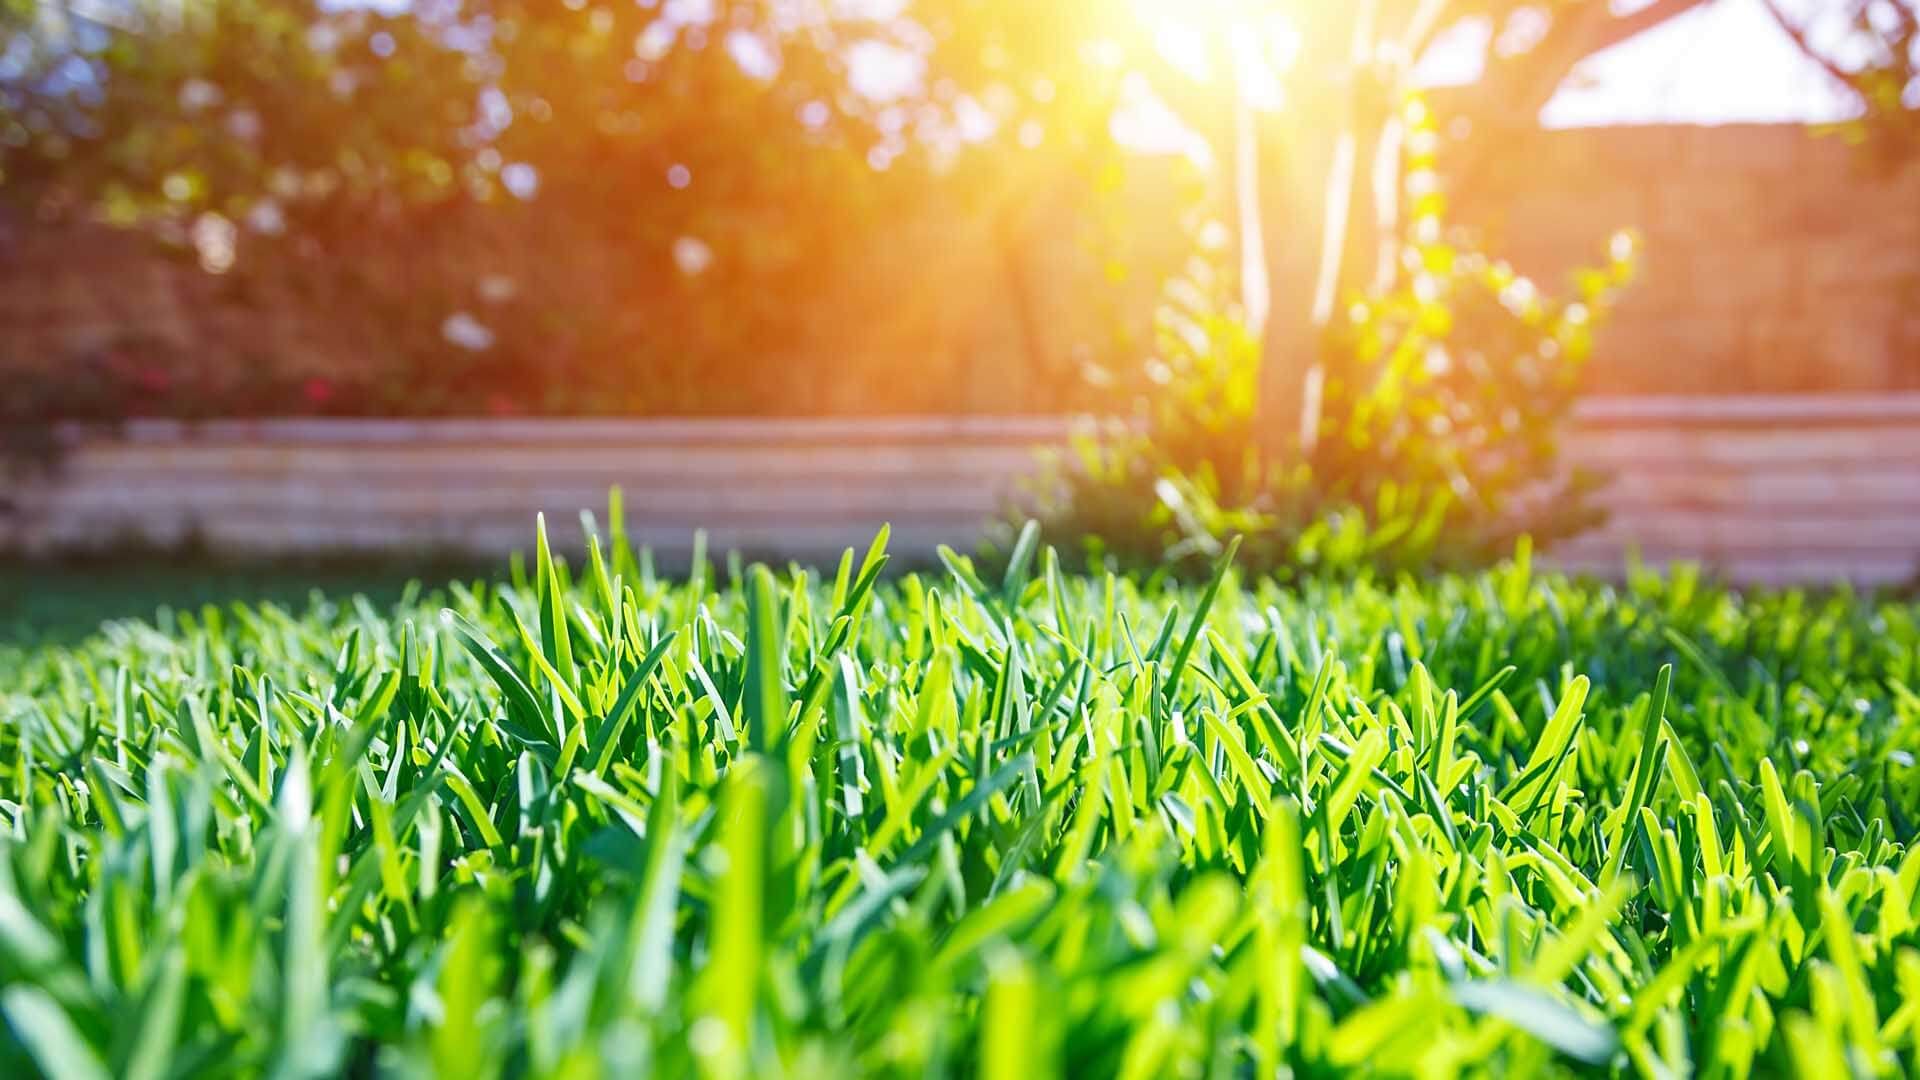 Grass with sunshine.